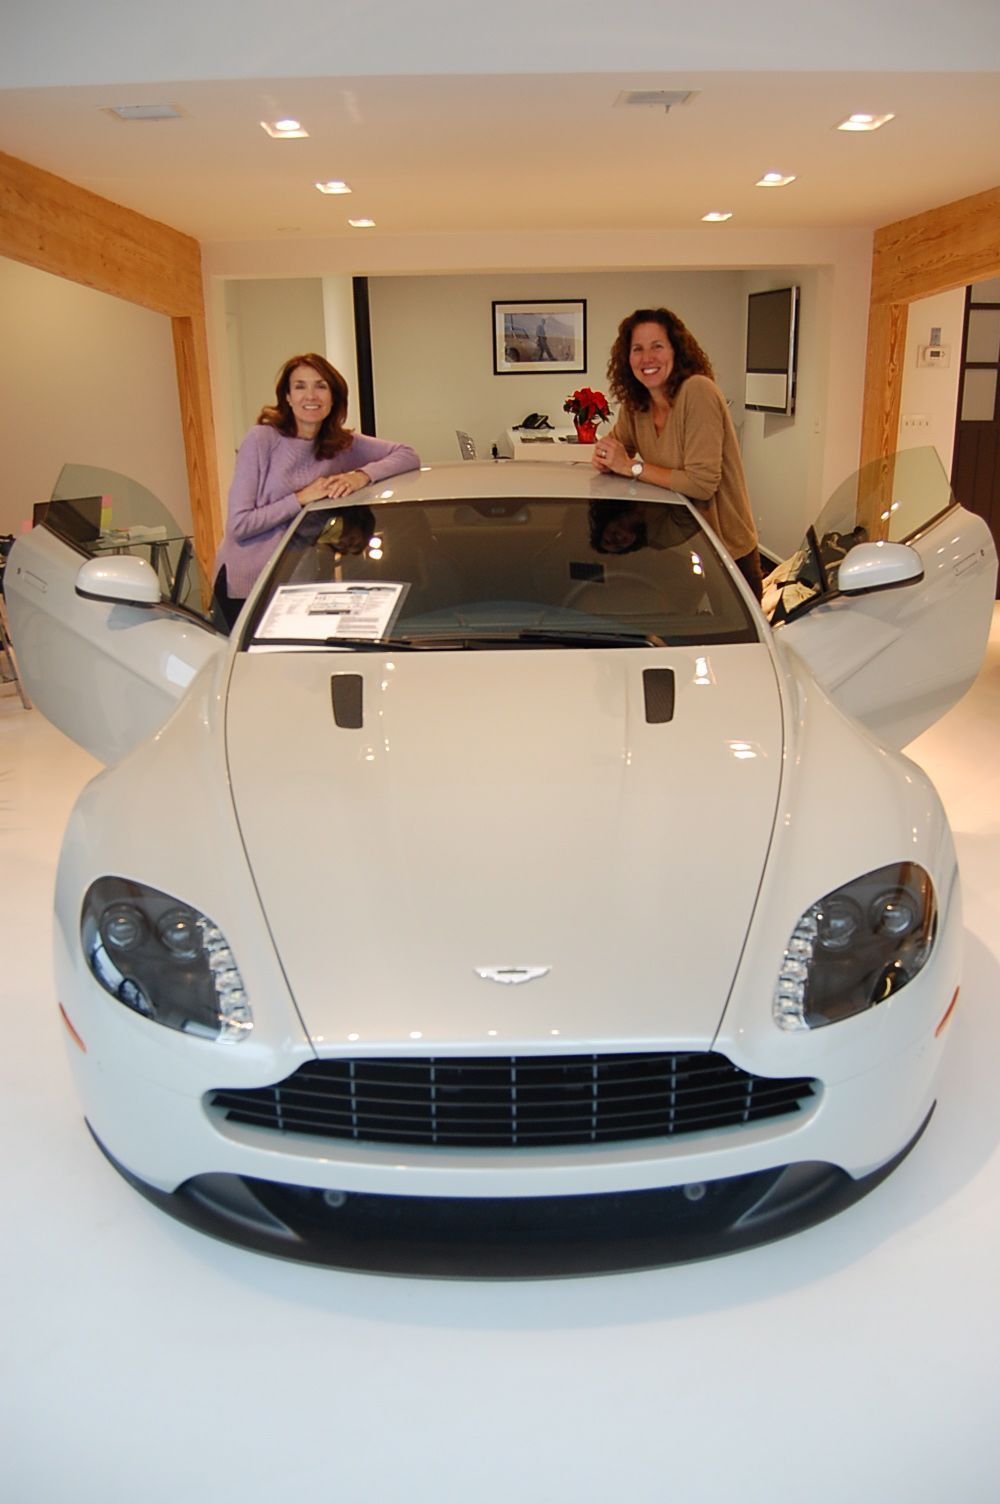 36a72cc8a85ed018574d_phyllis_and_mary._aston_martin.jpg